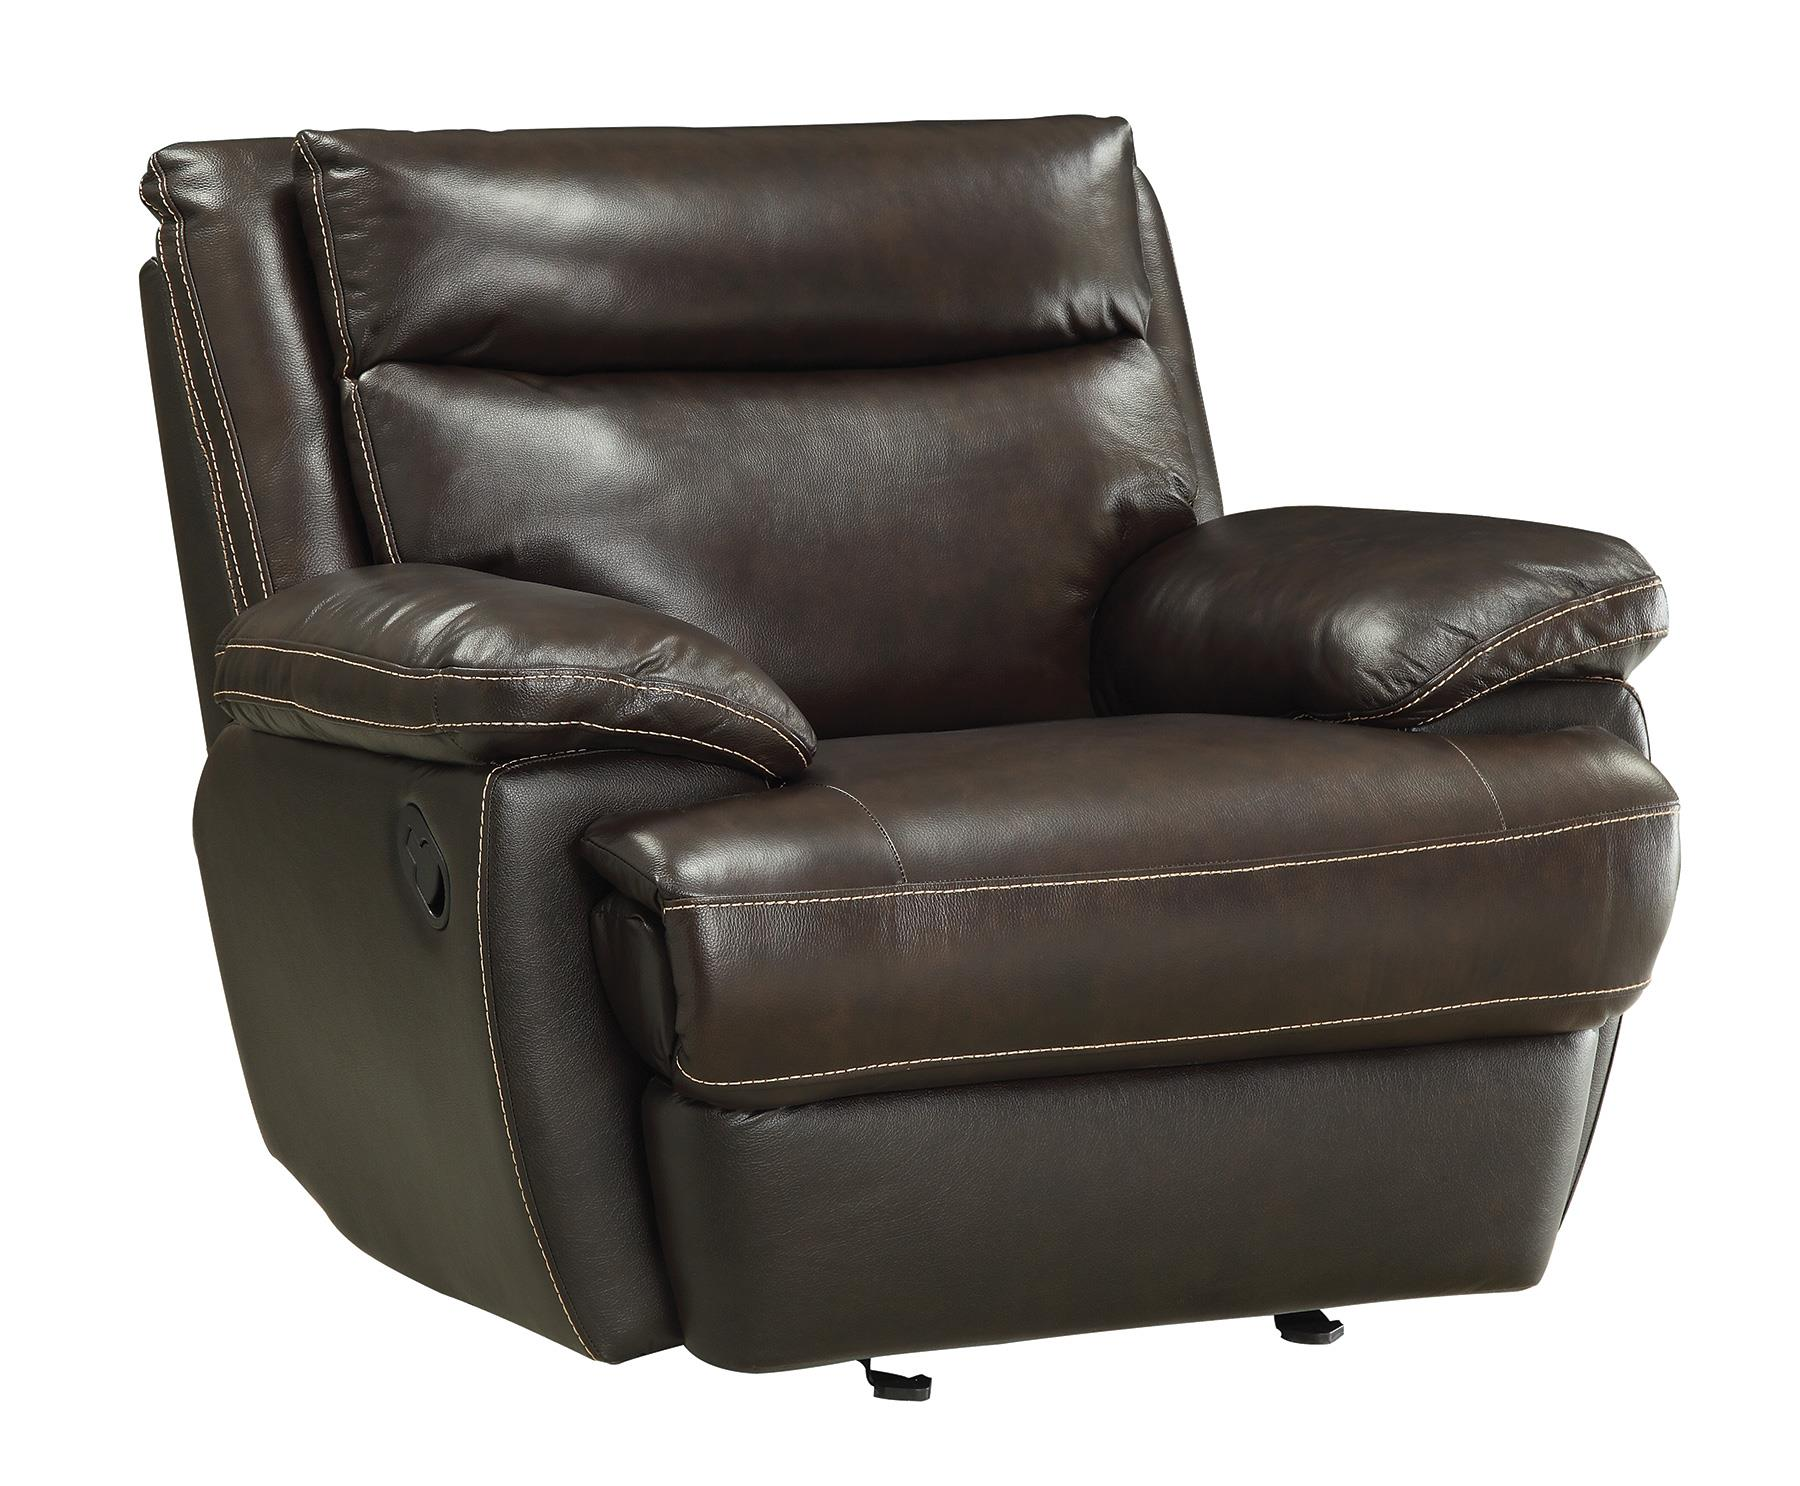 Coaster MacPherson Glider Recliner - Item Number: 601813